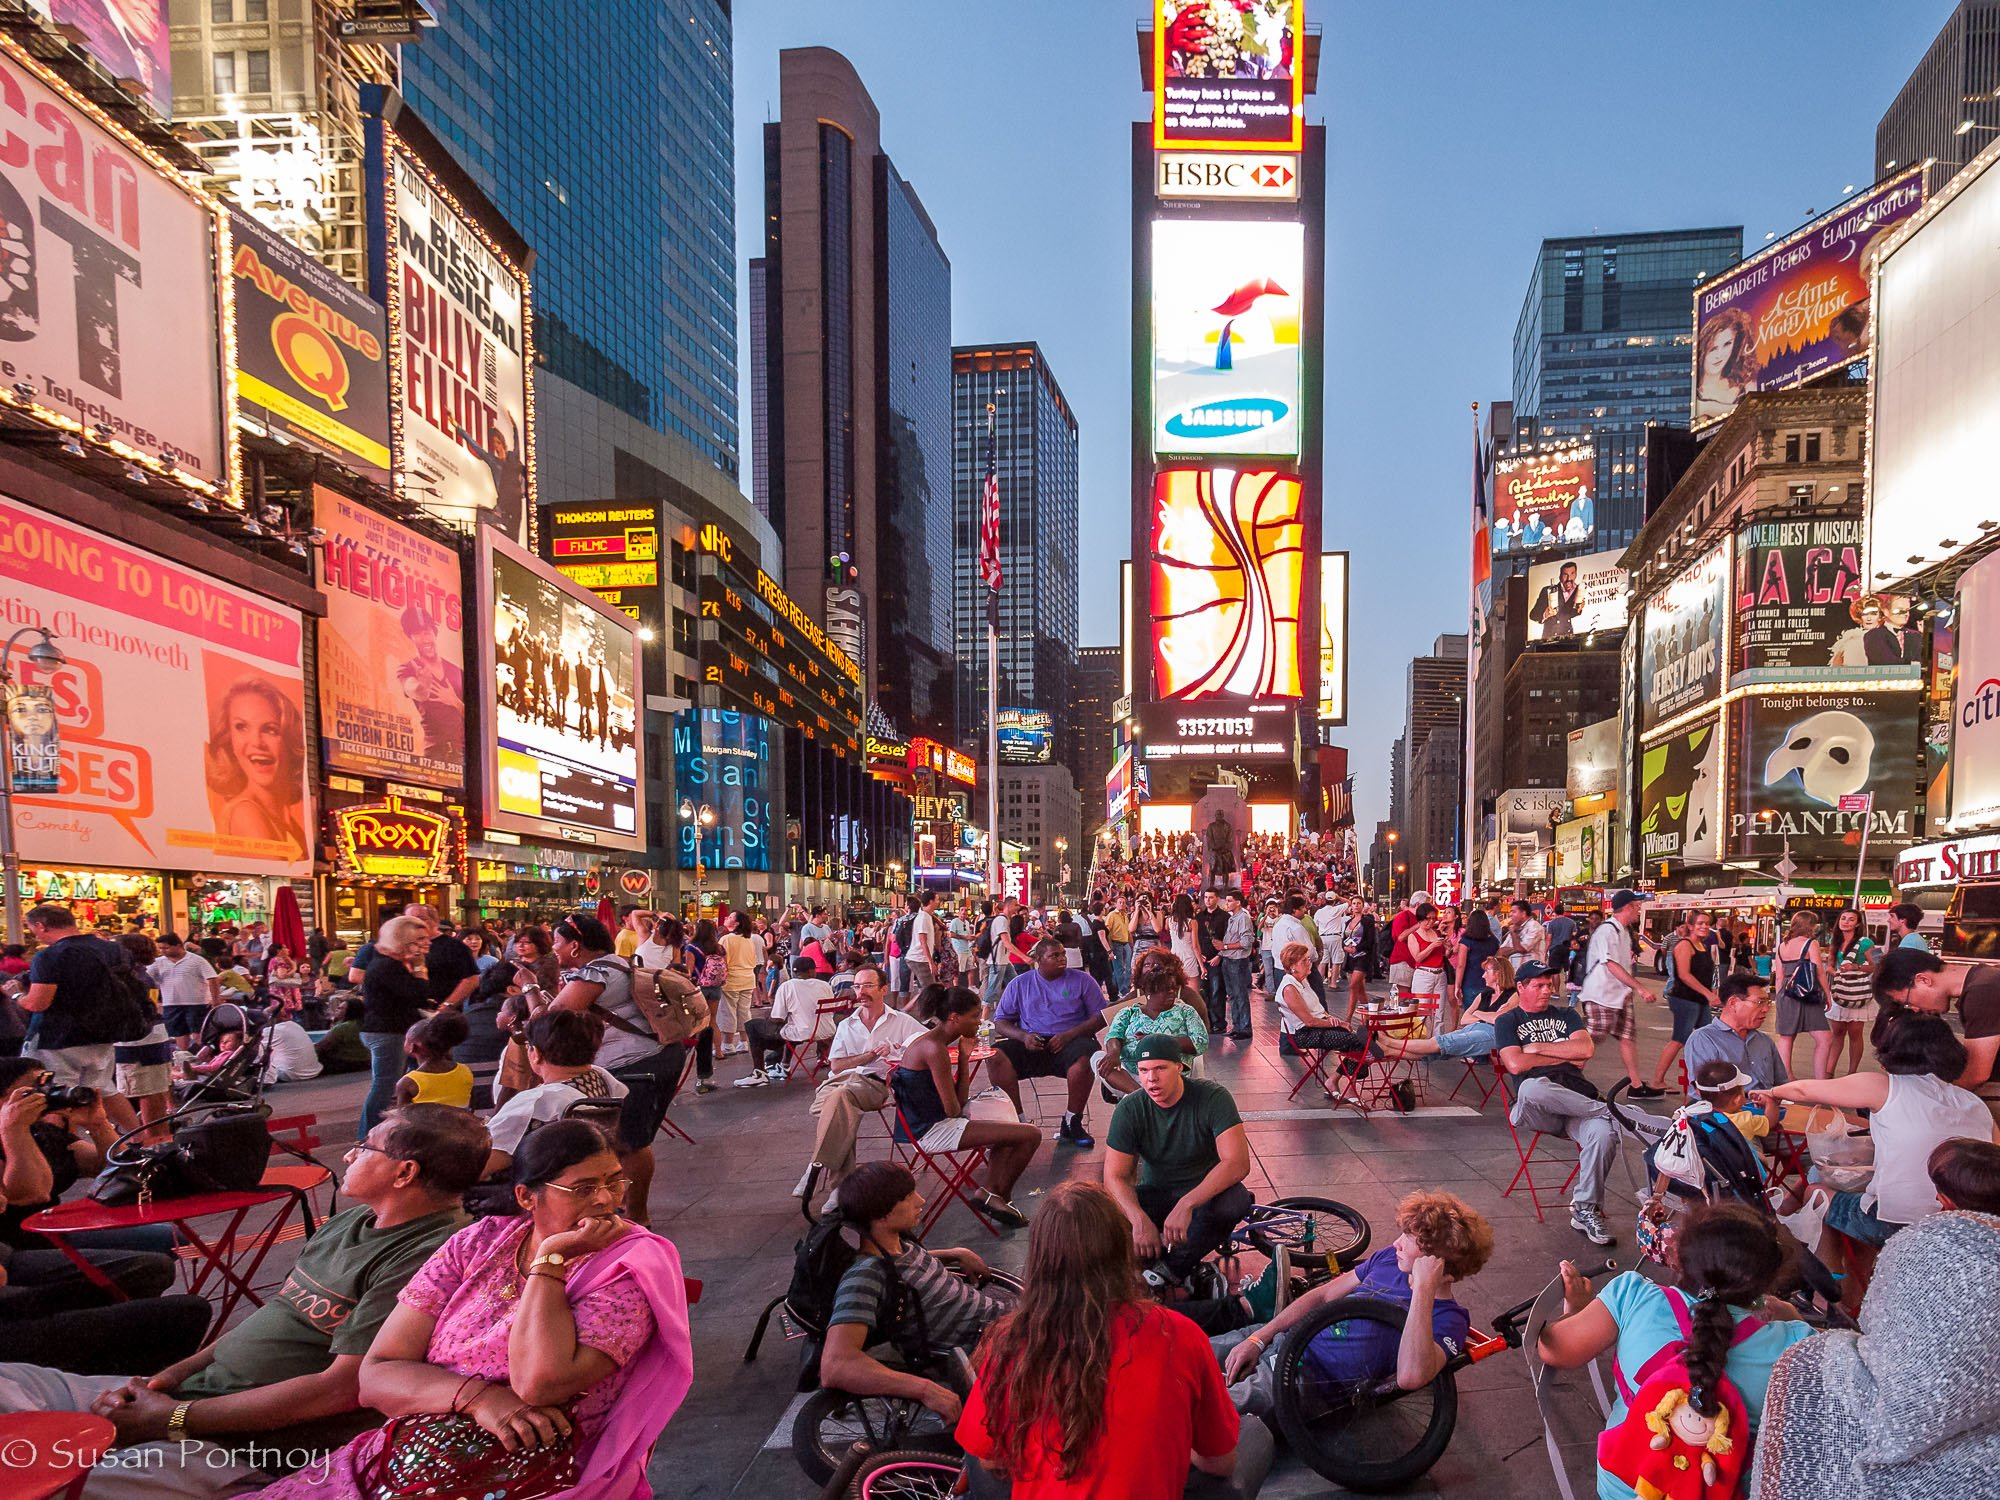 Rediscovering Photography On Summer >> Crowds in Times Square – The Insatiable Traveler